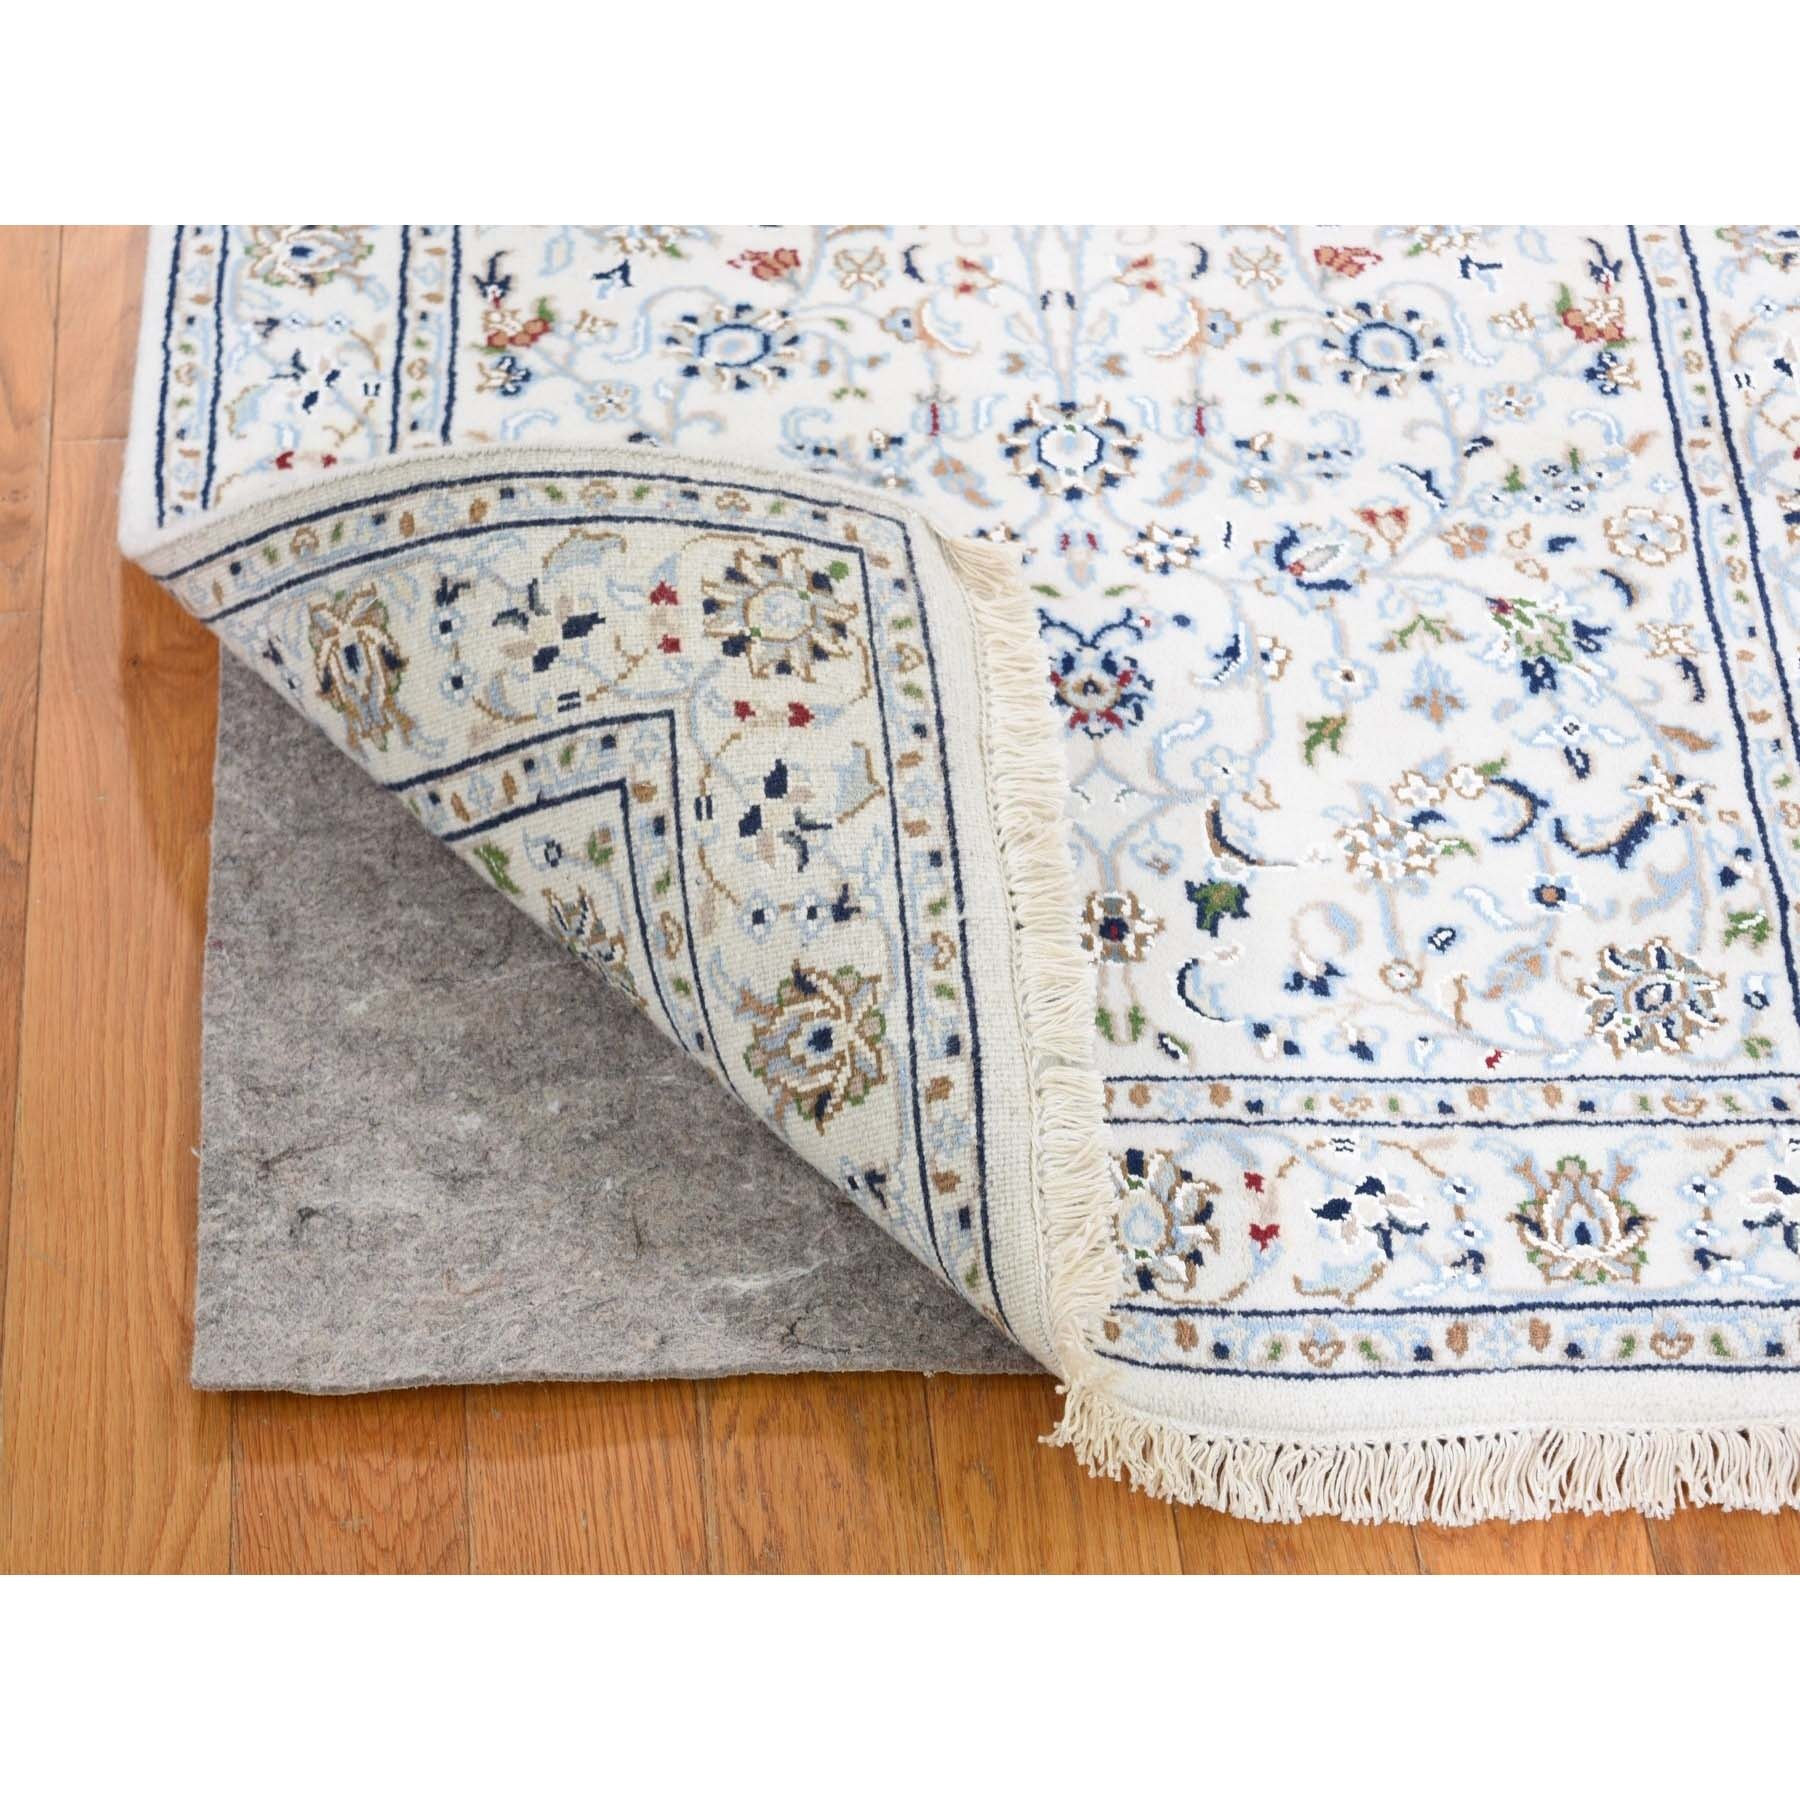 """2'7""""x7'10"""" Ivory Wool And Silk 250 Kpsi All Over Design Nain Runner Hand-Knotted Oriental Rug"""